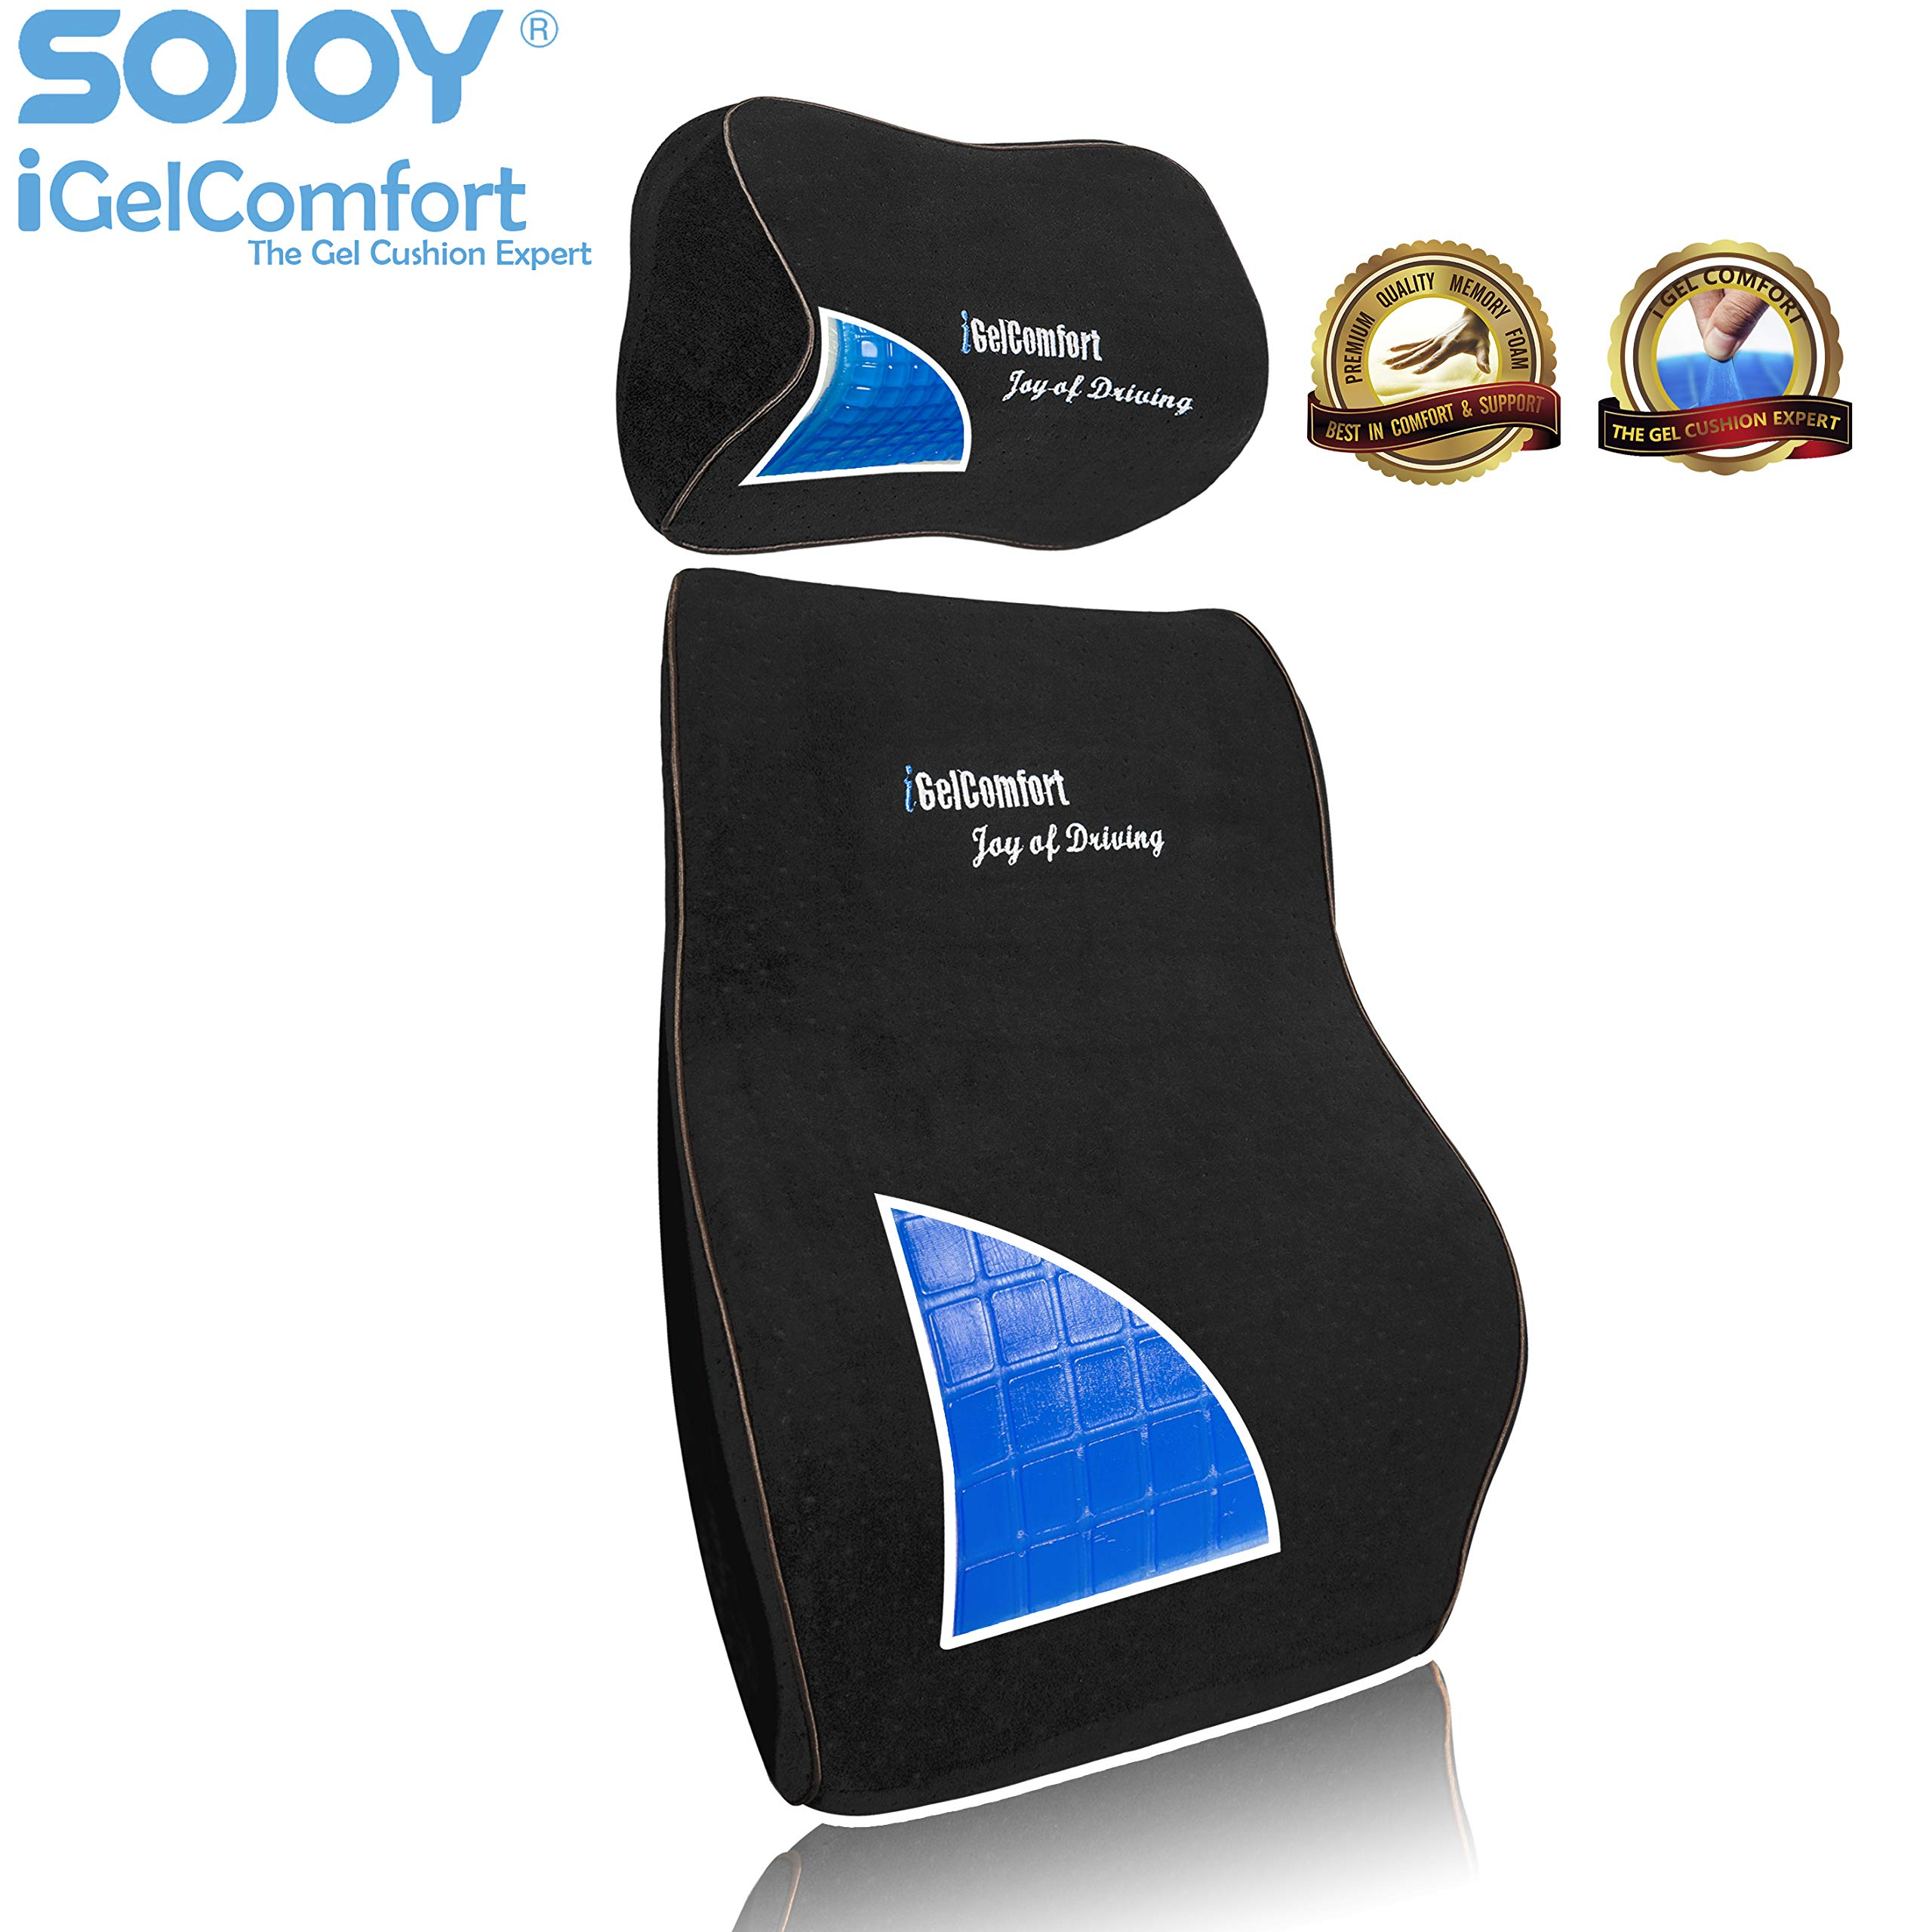 Sojoy iGelComfort Enhanced Multi-Use (Car/Truck/Office/Home/Outside) Gel Seat Cushion with Memory Foam (Black) (19x15x5)